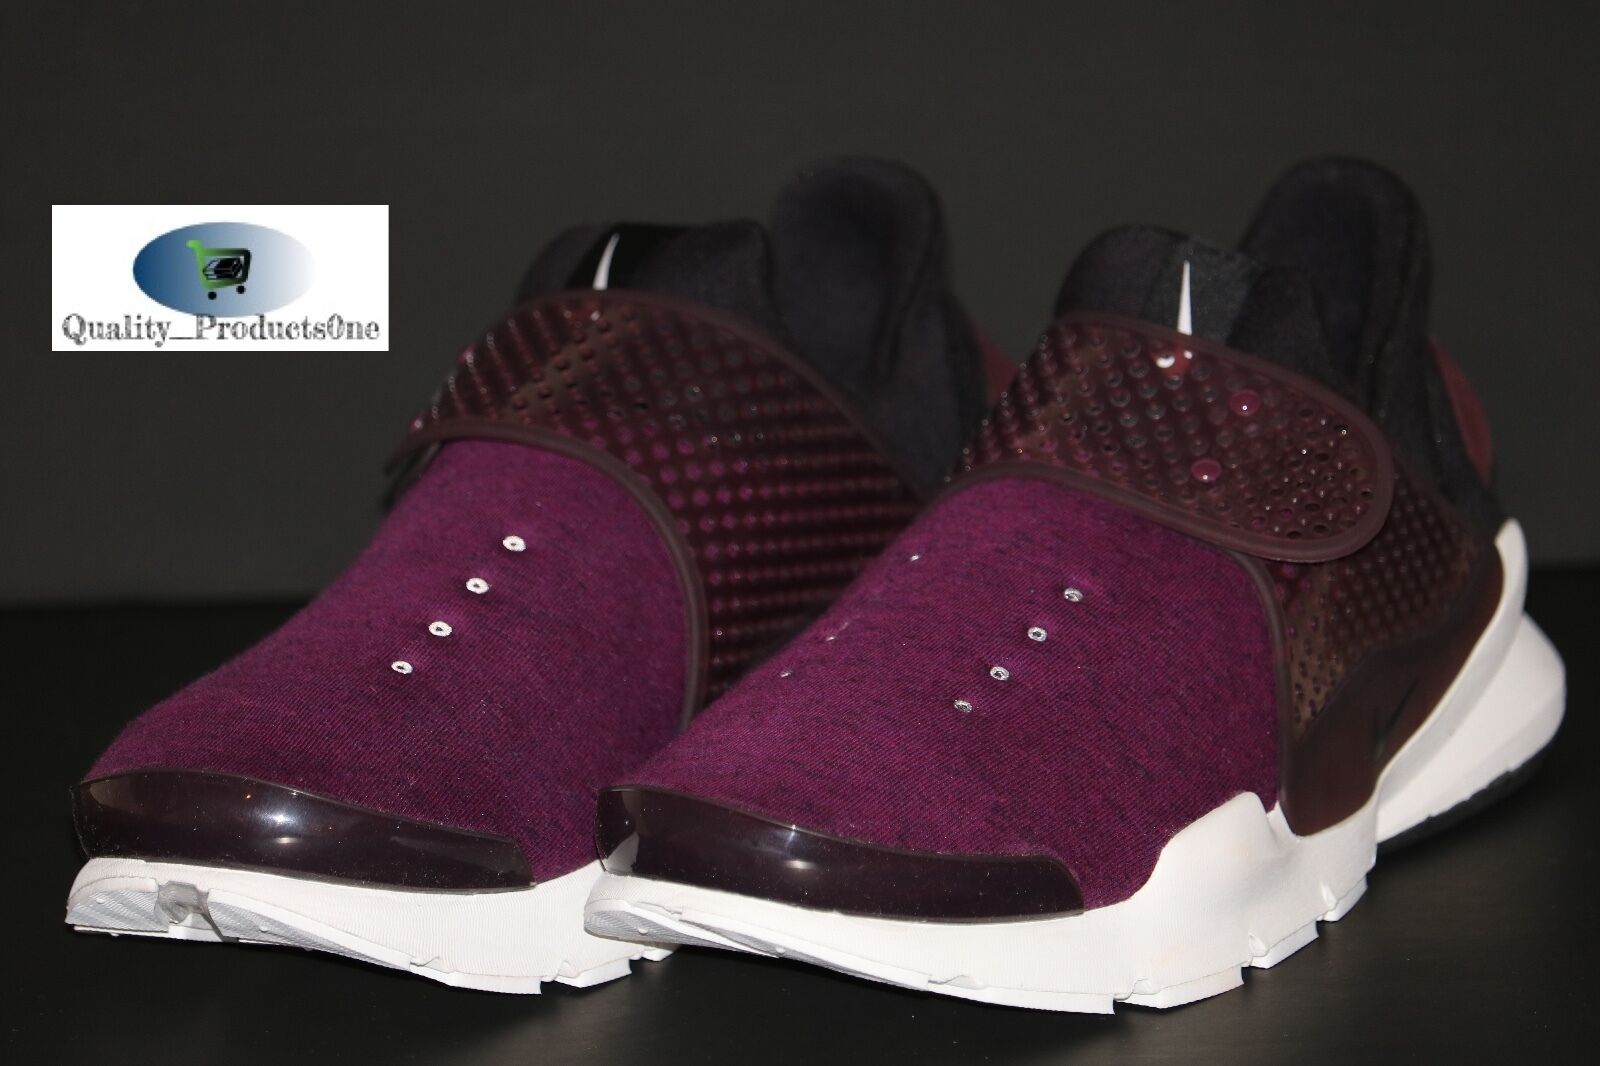 Mens Nike Nikelab Sock Dart Tech Fleece Mullberry/Black 834669-501 Size 9